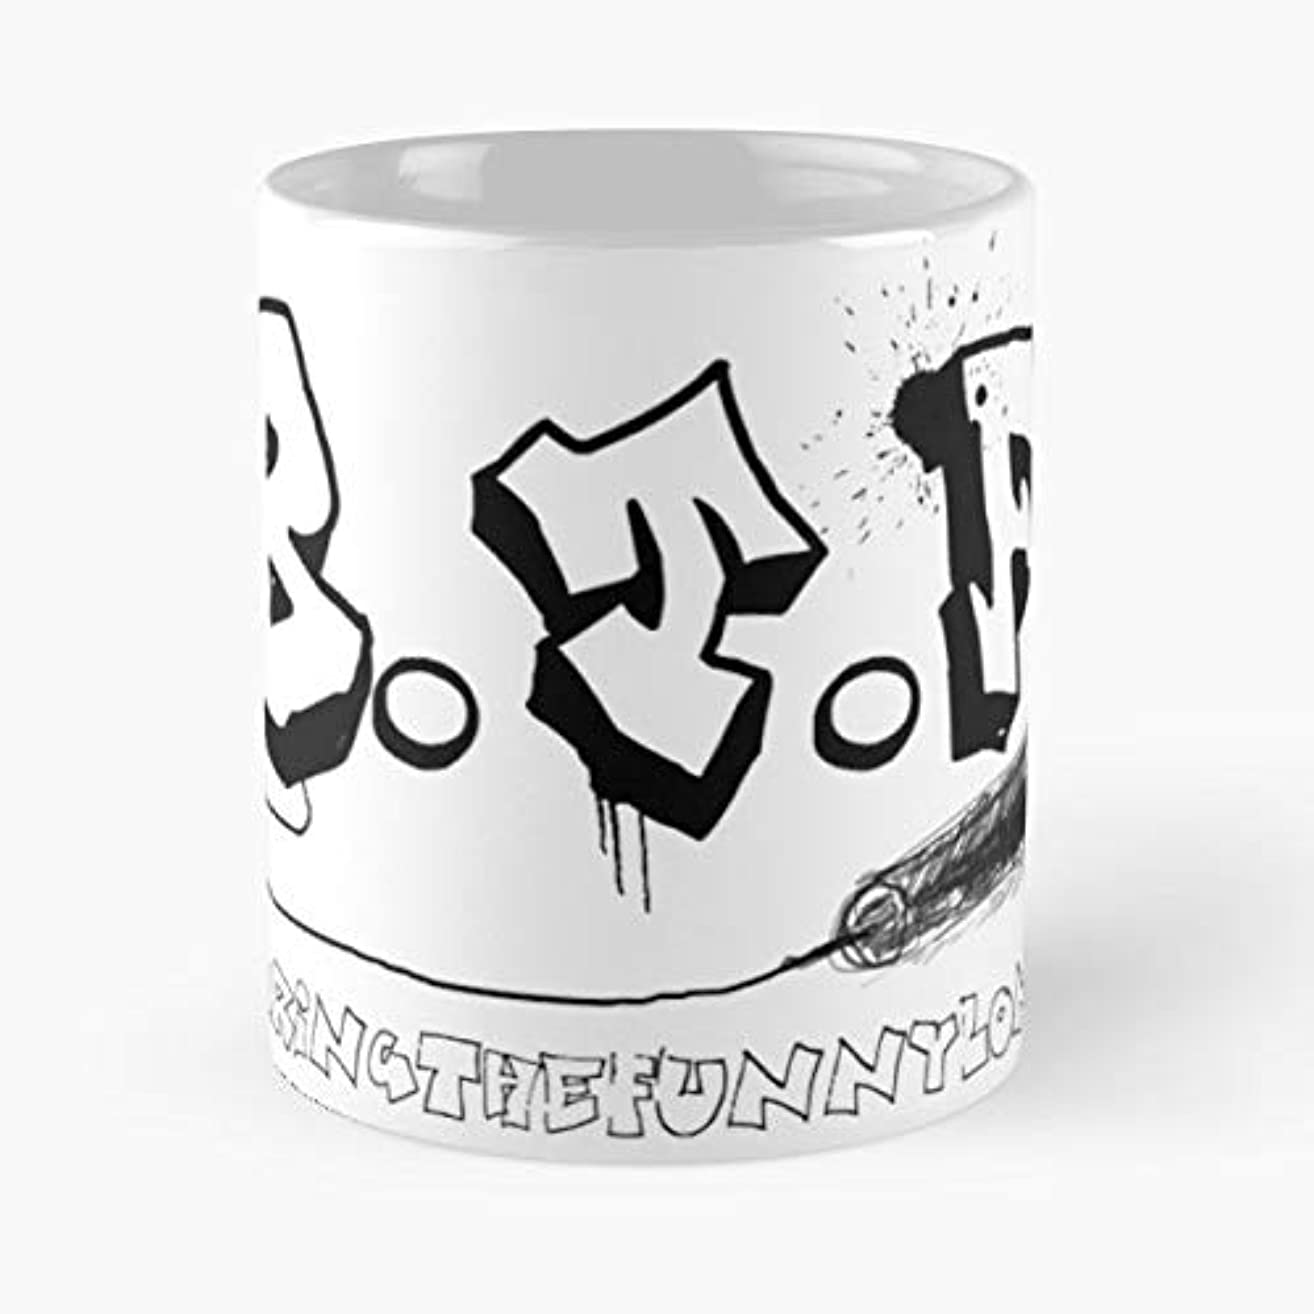 Bring The Funny Comedy London - Coffee Mug-11 Oz,white Unique Birthday Gift-the Best Gift For Holidays.